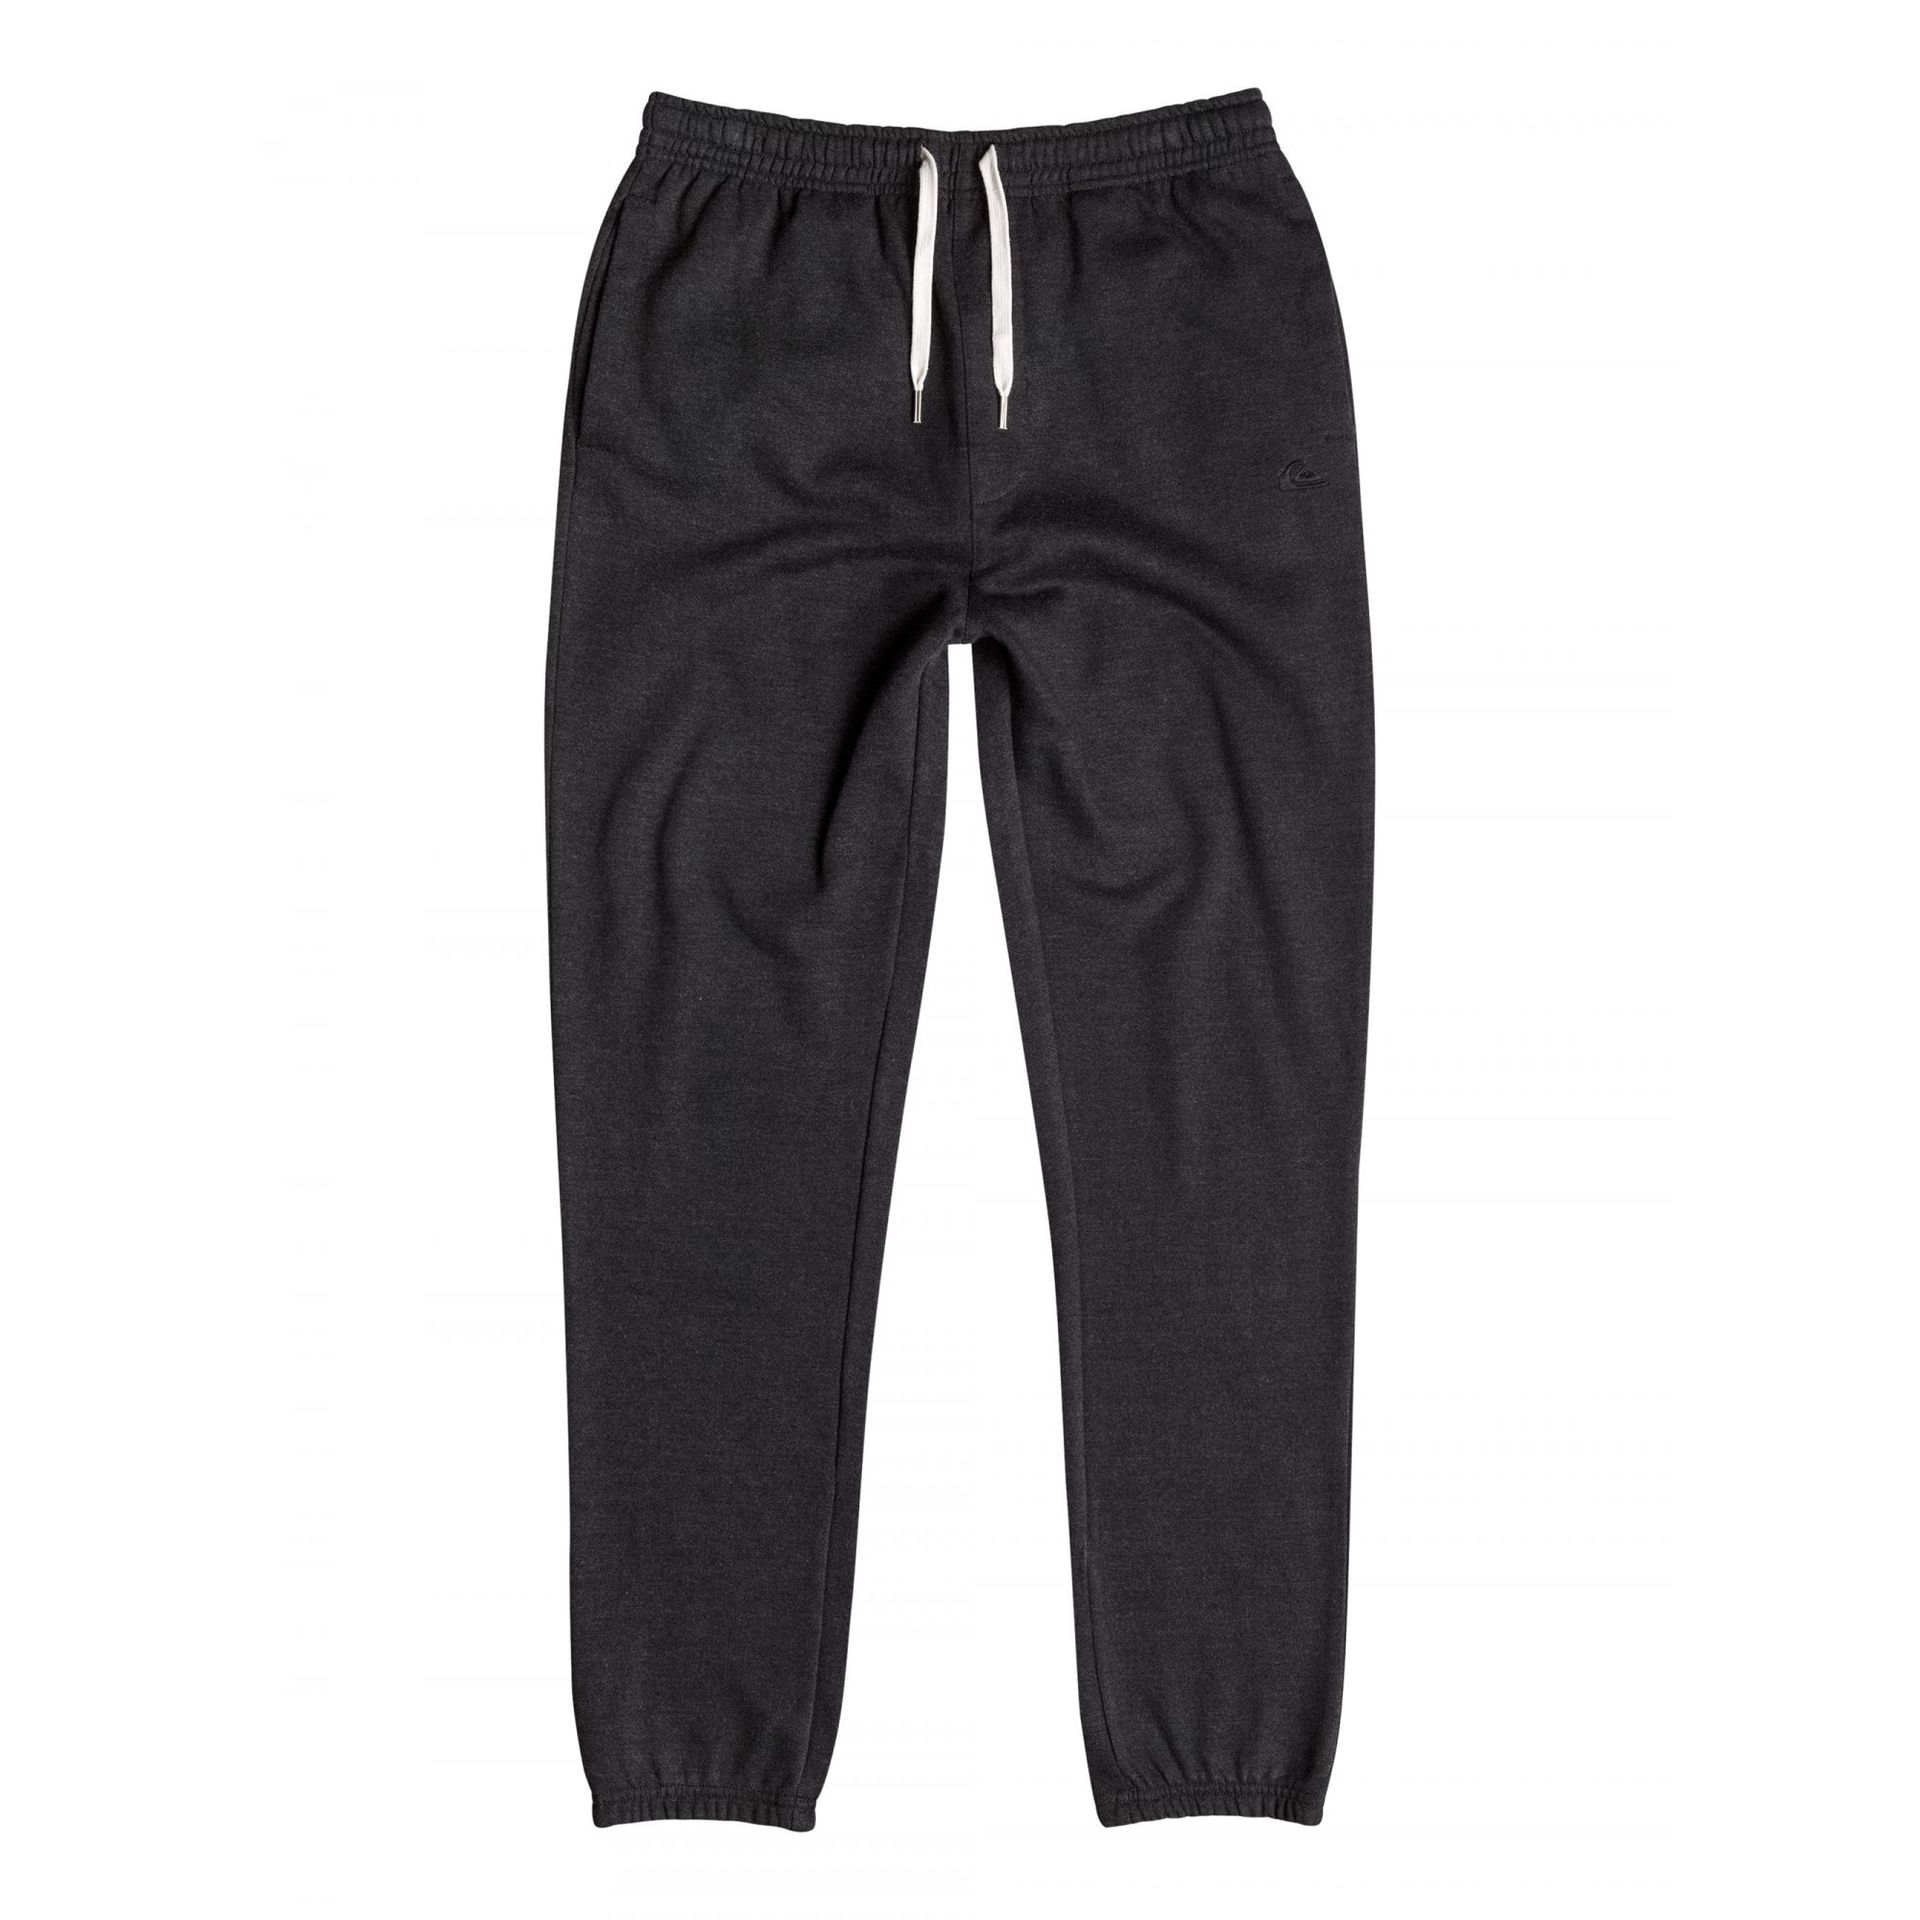 SPODNIE QUIKSILVER EVERYDAY TRACKPANT ANTRACITE 0